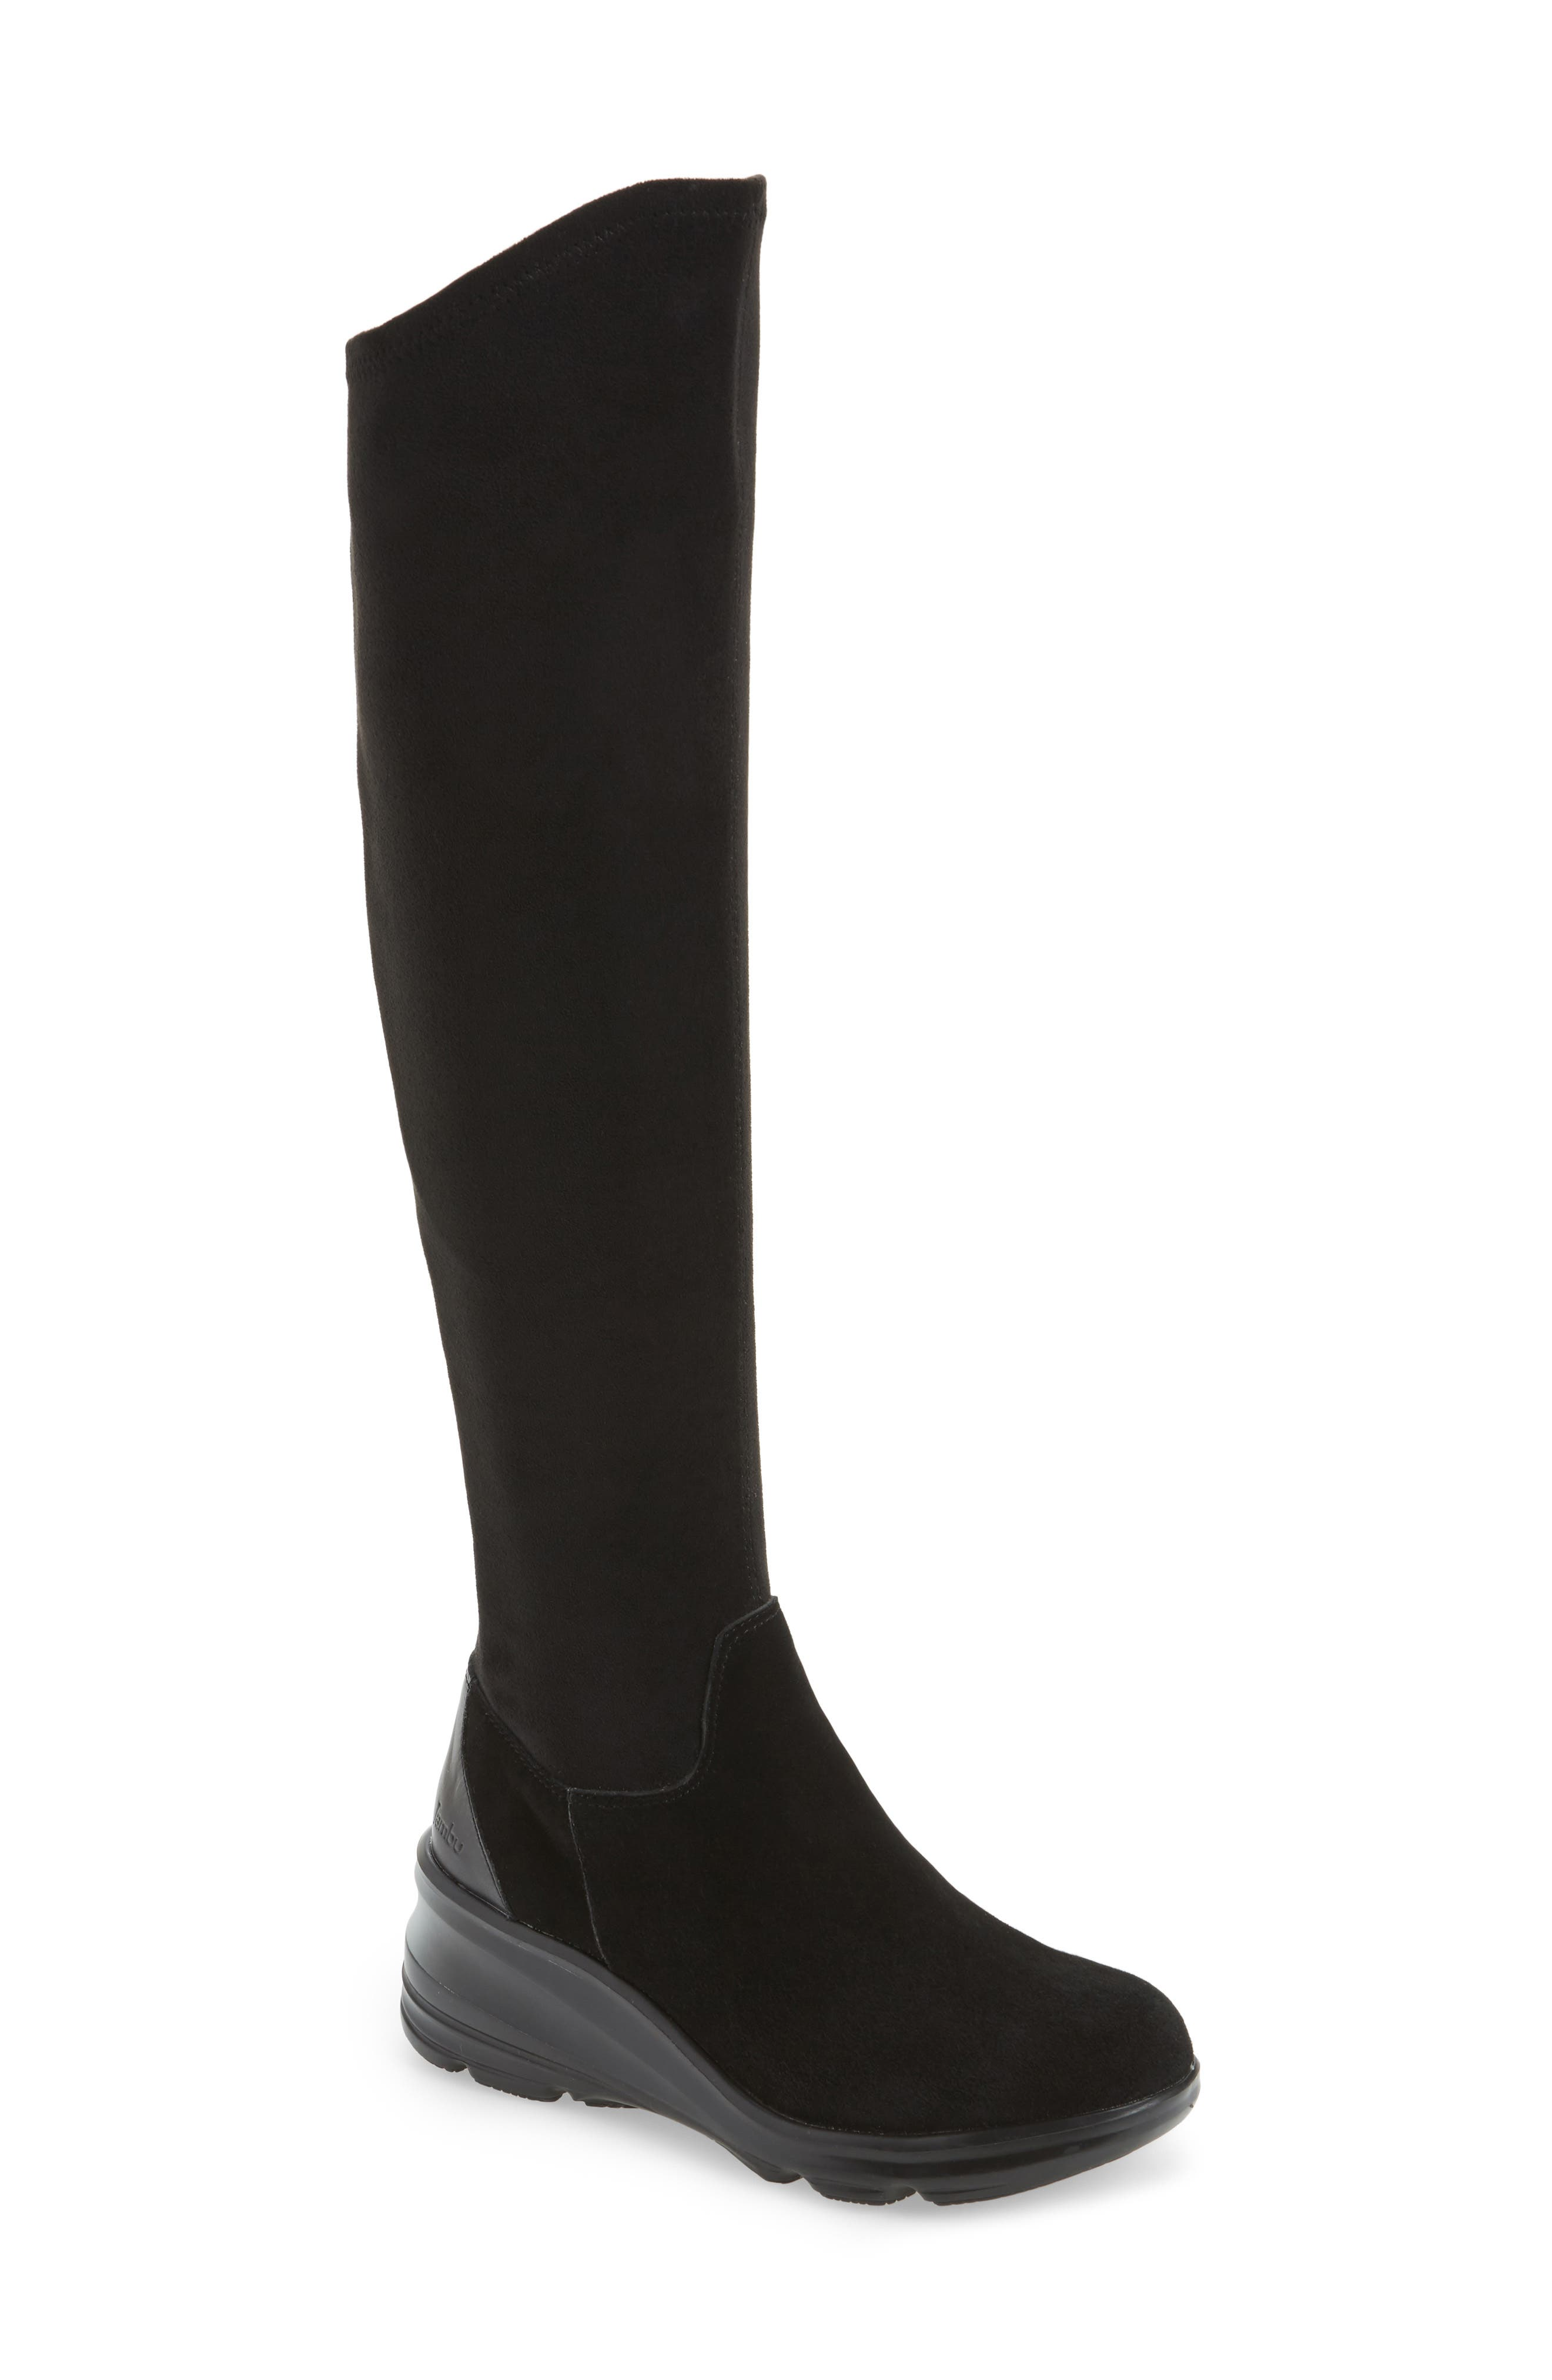 Kendra Over the Knee Water-Resistant Boot,                         Main,                         color, 001